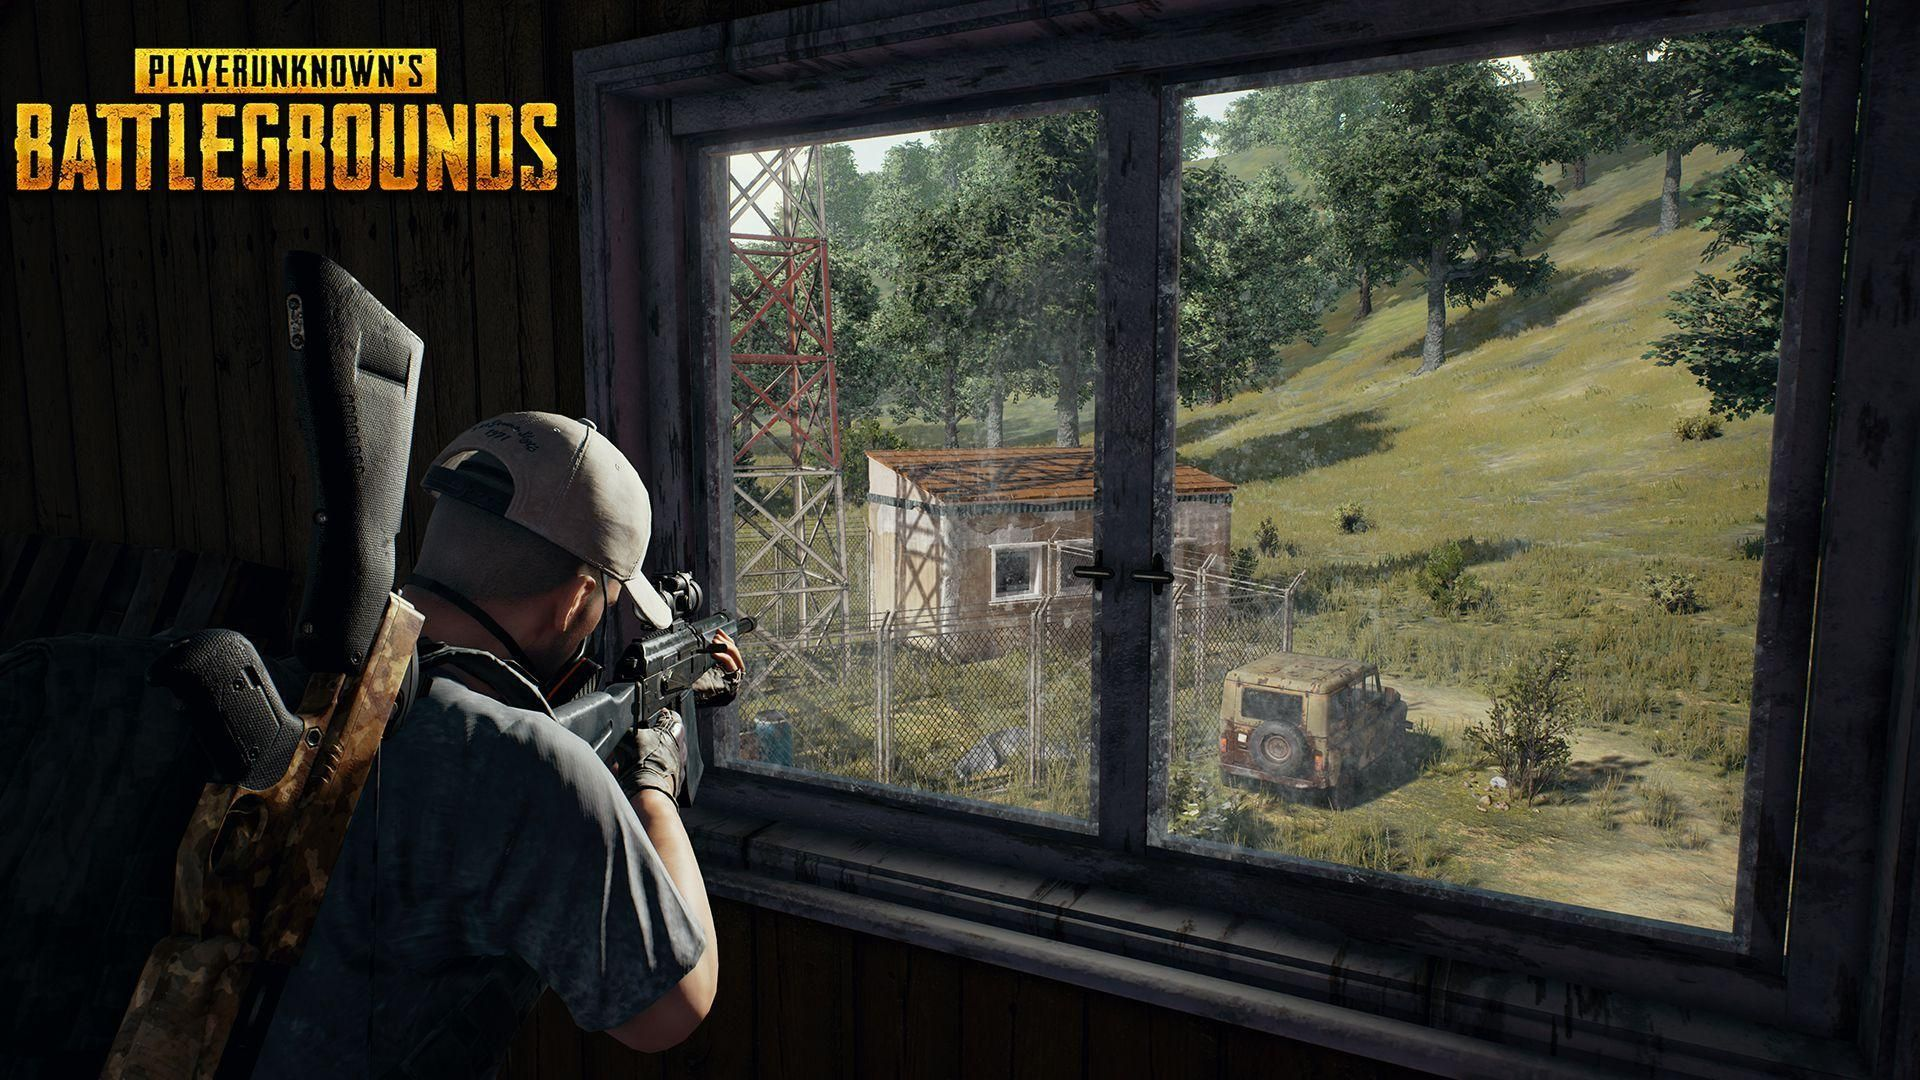 Pubg Lite Wallpapers Wallpaper Cave Wallpaper Pc Hd Wallpapers For Pc Android Wallpaper